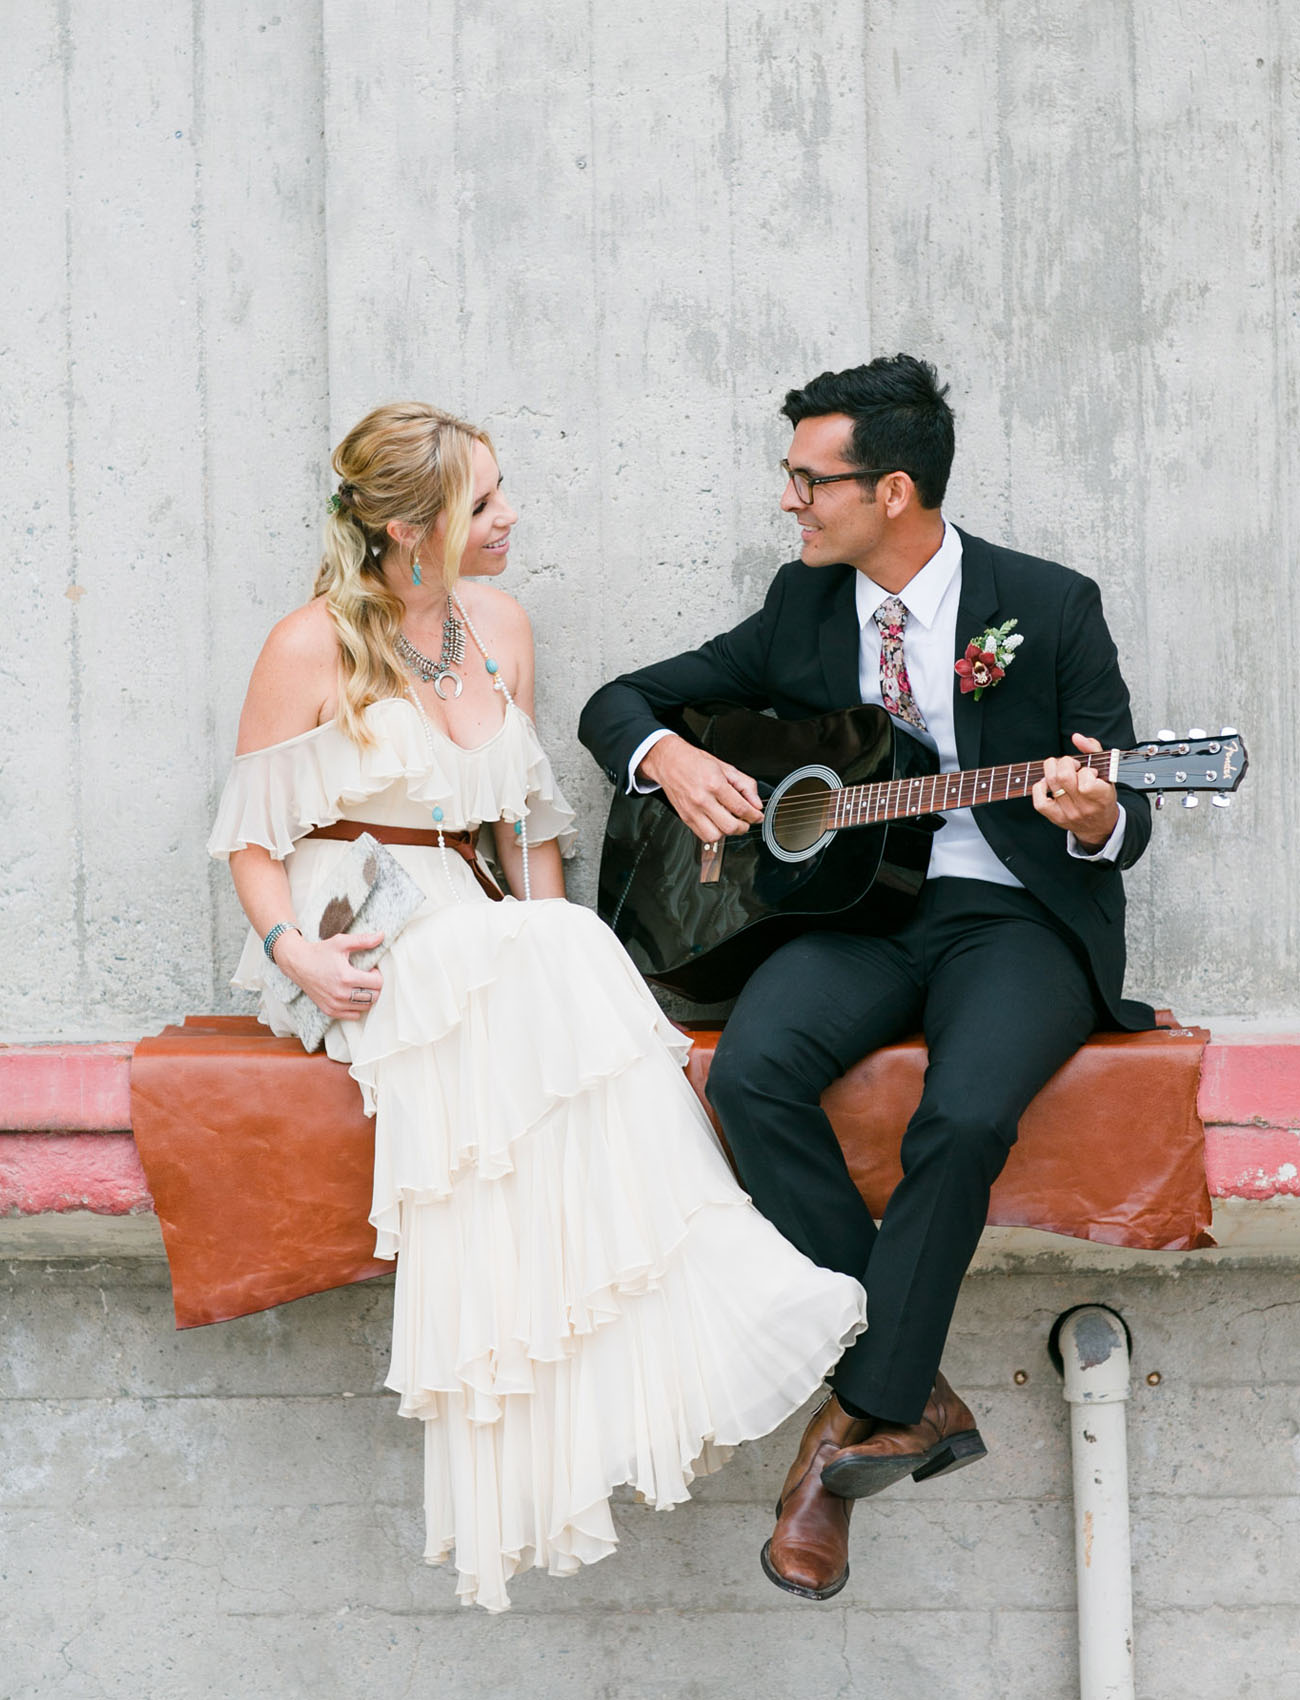 Industrial, Mid-Century Wedding Inspiration at The Santa Barbara Wine Collective